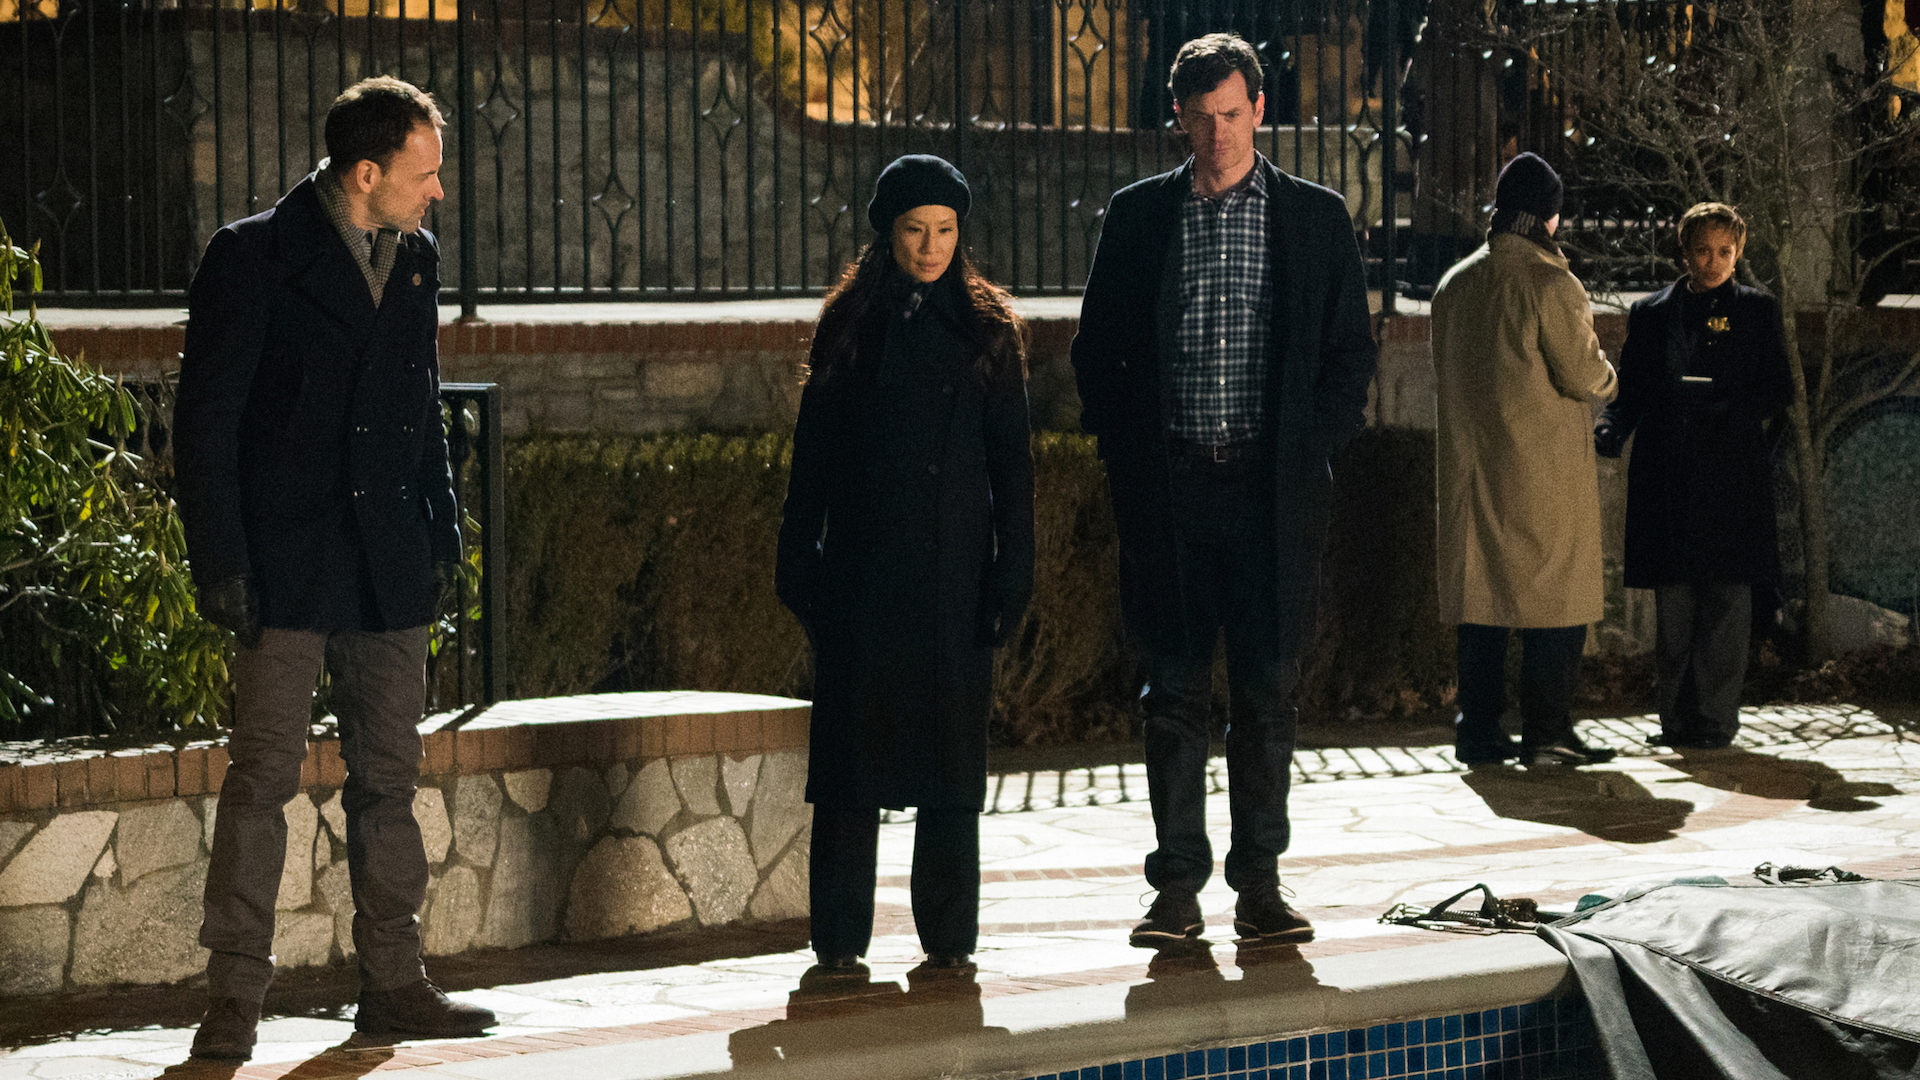 Jonny Lee Miller as Sherlock Holmes, Lucy Liu as Joan Watson, and Tom Everett Scott as Henry Baskerville